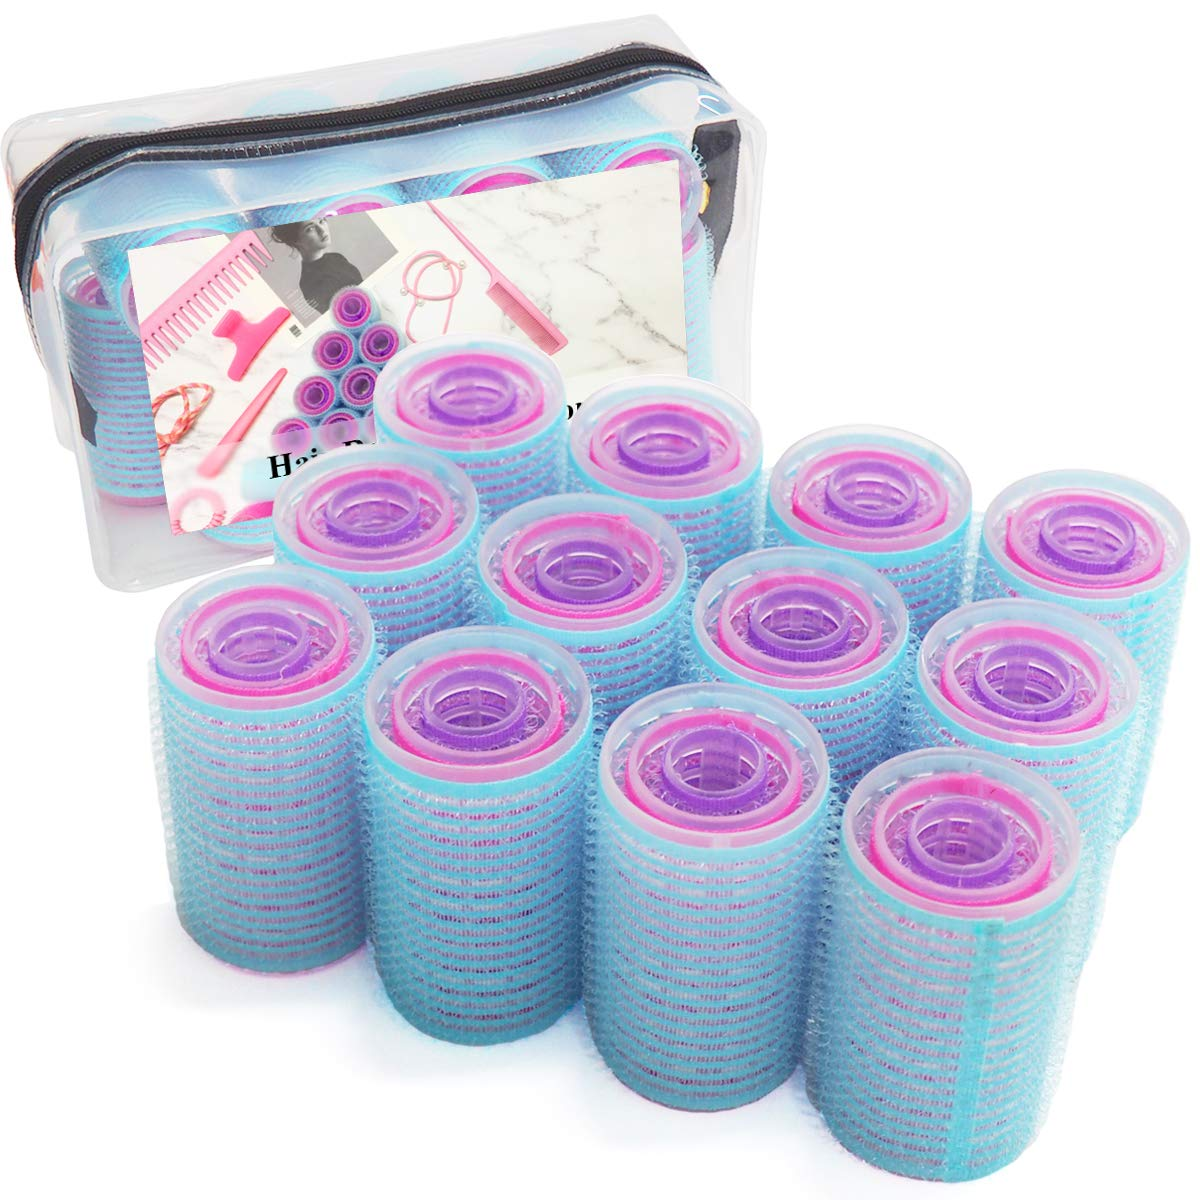 xnicx 36 Count Self Grip Large Small Medium Hair Rollers Eco Friendly  Material RoHS Standard Vented 6ca46593ffa